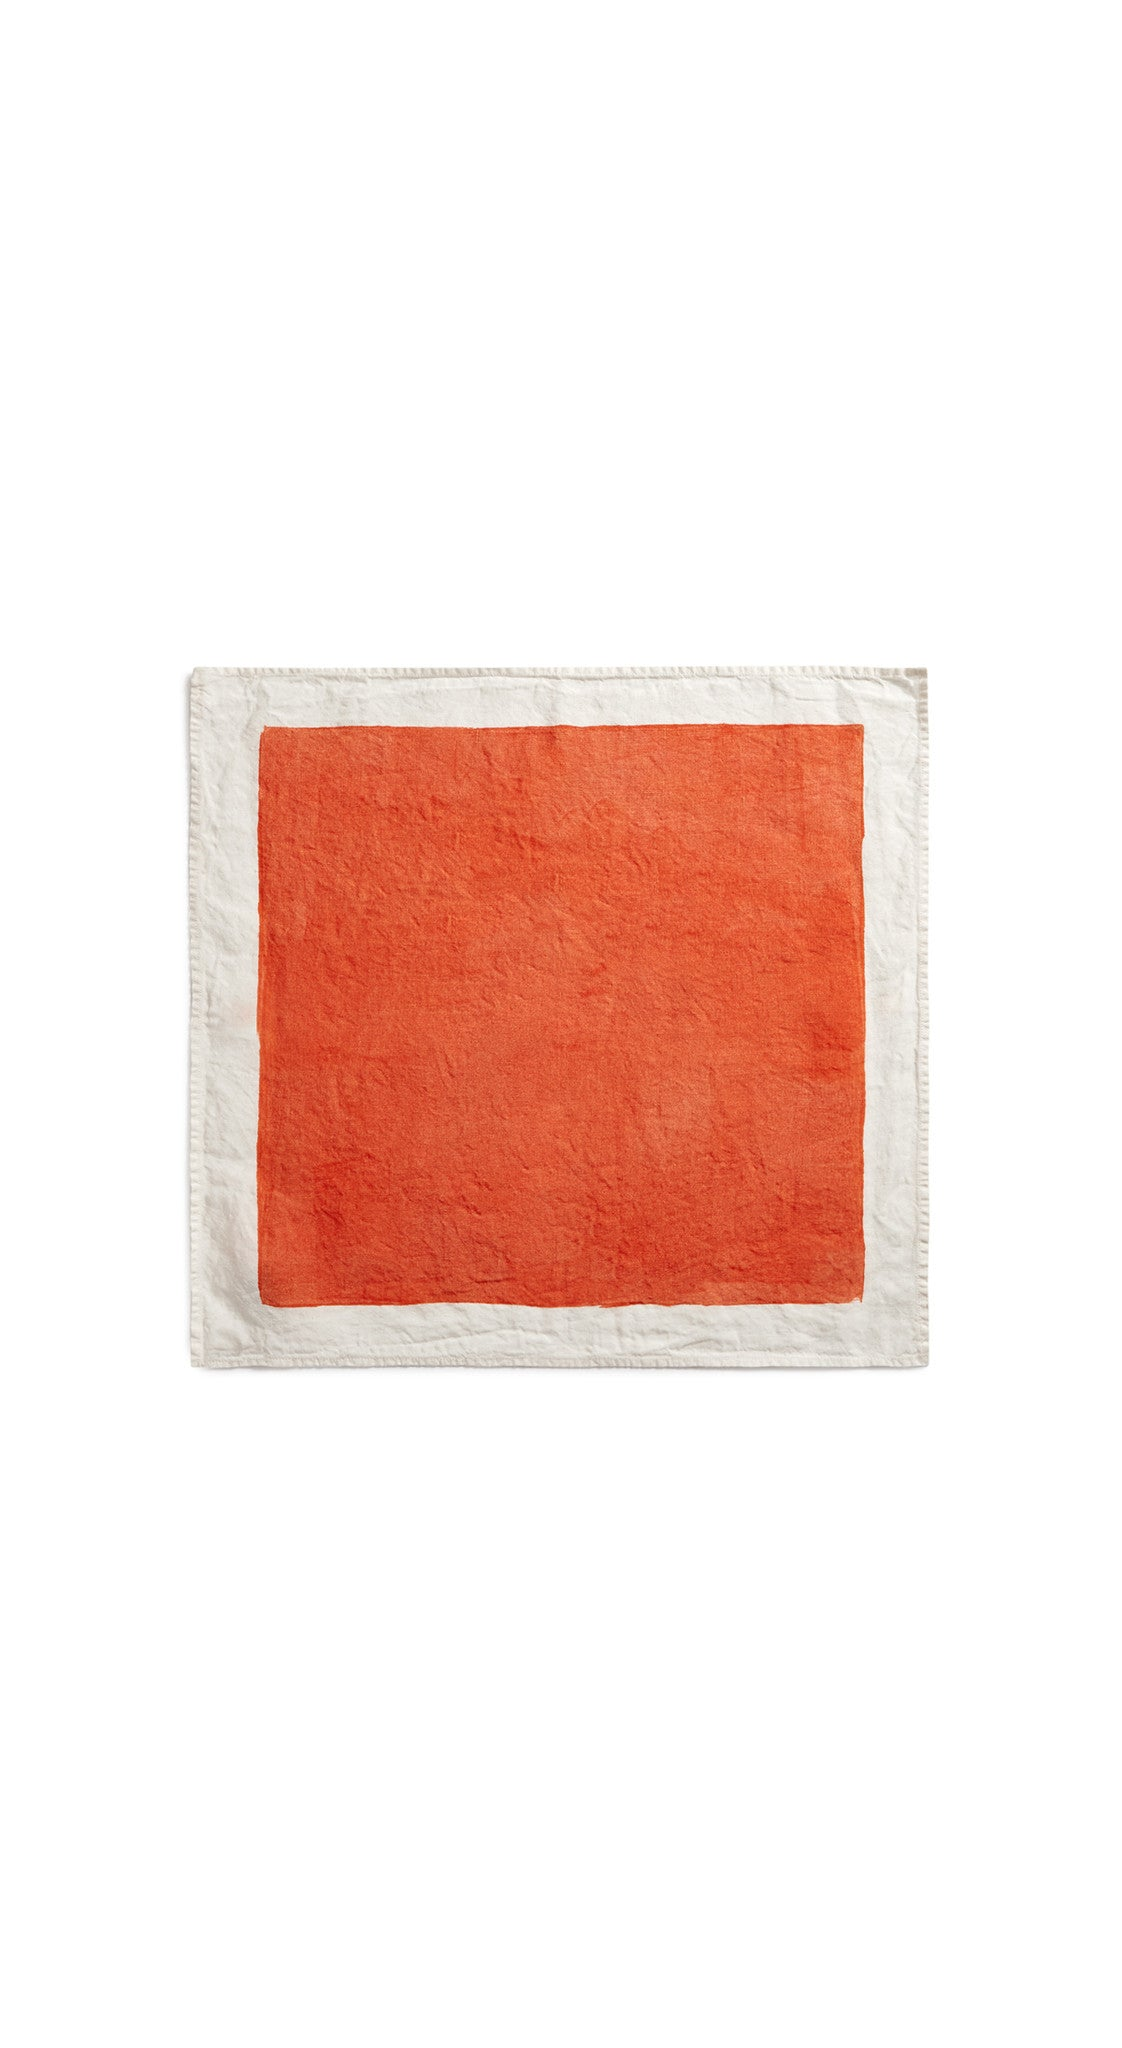 Full Field Linen Napkin in Coral Orange